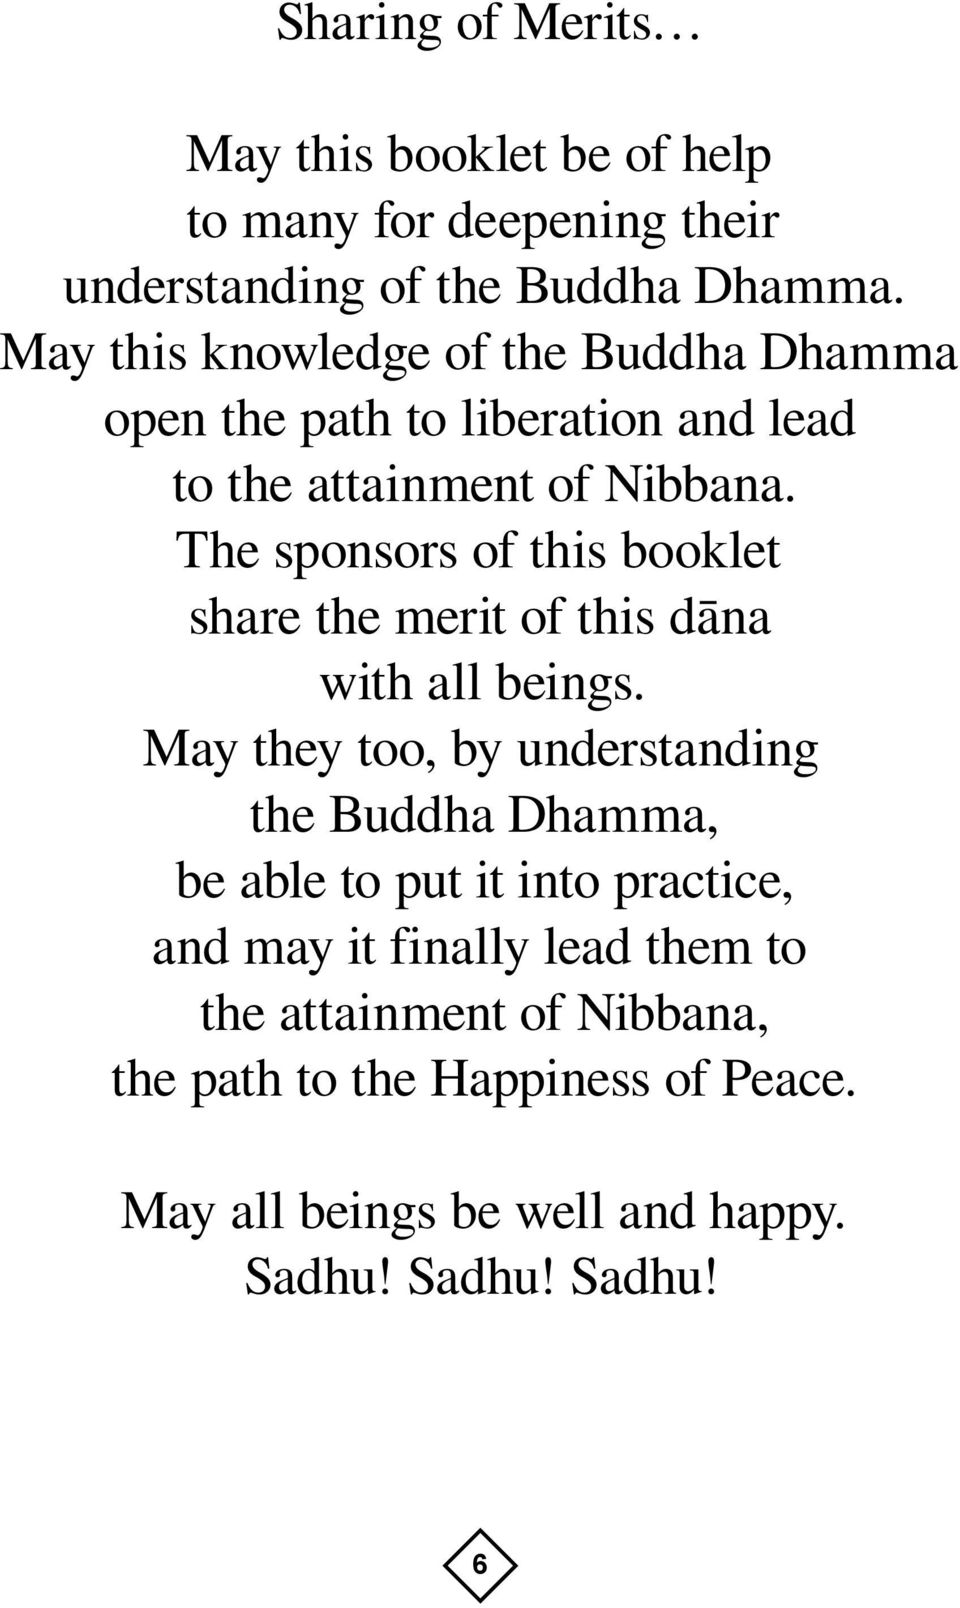 The sponsors of this booklet share the merit of this dàna with all beings.